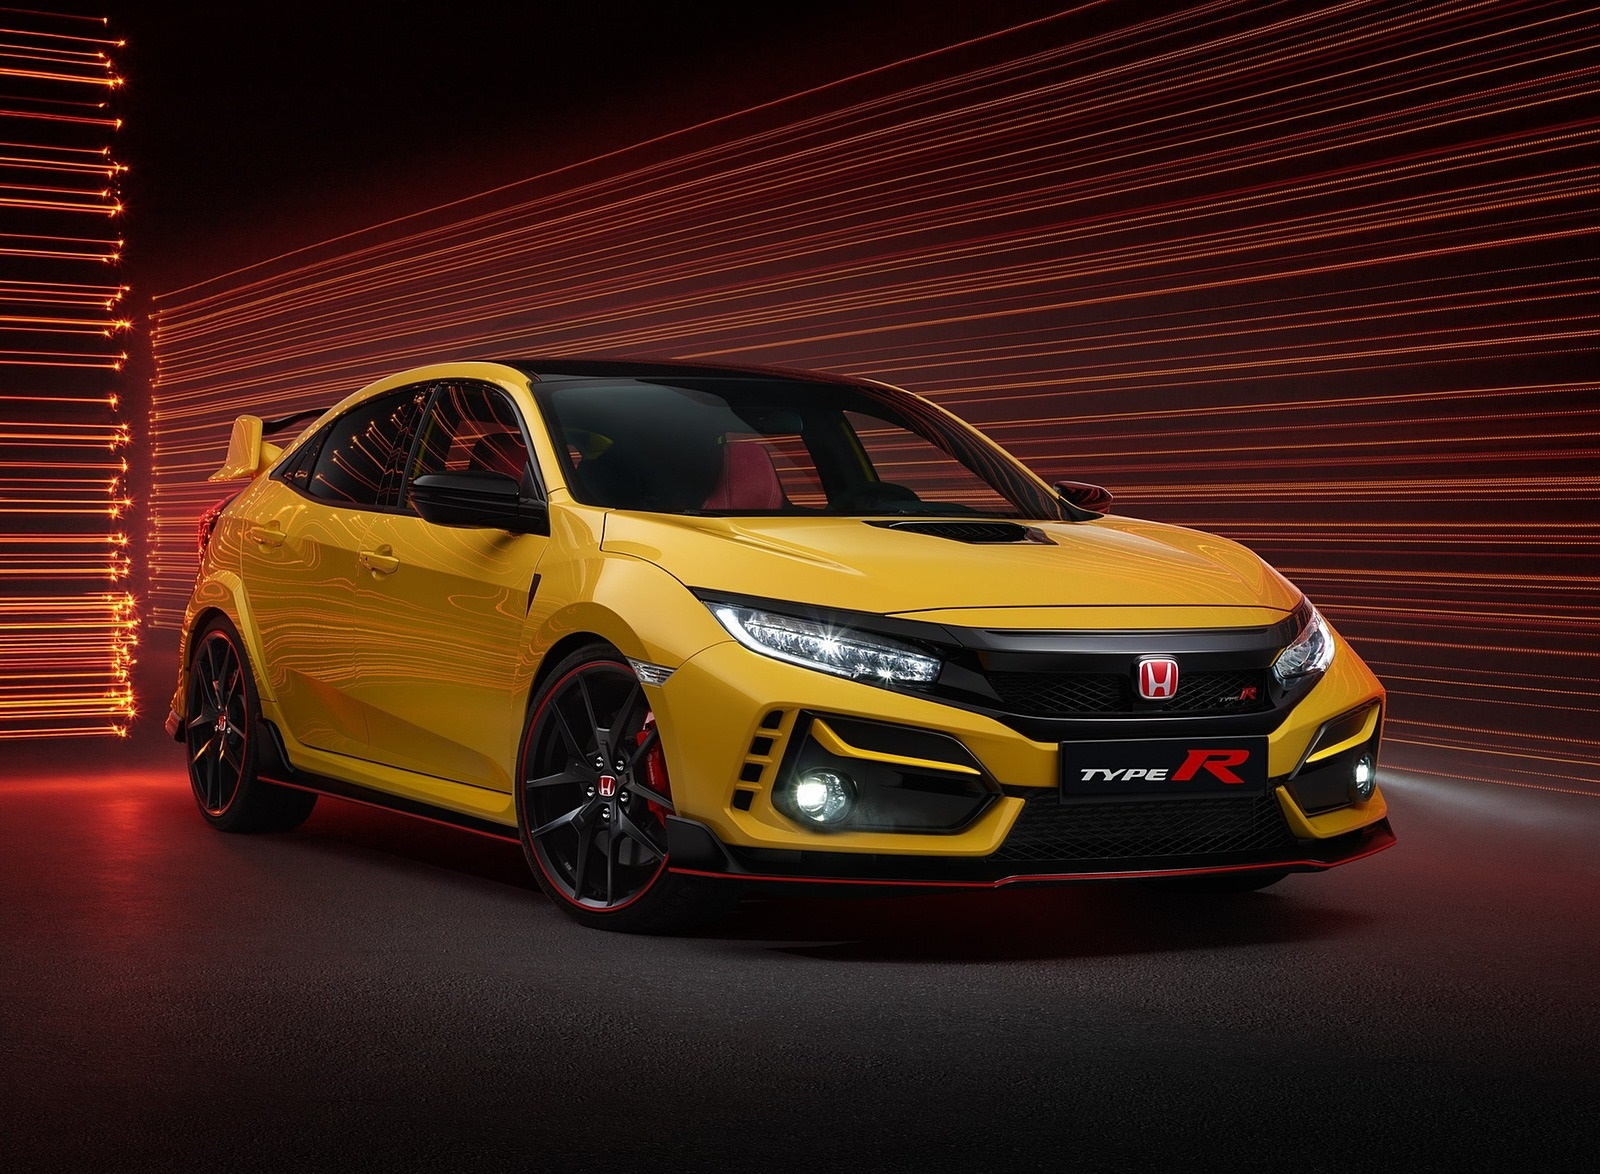 2021 Honda Civic Type R Limited Edition Front Three-Quarter Wallpapers (1)